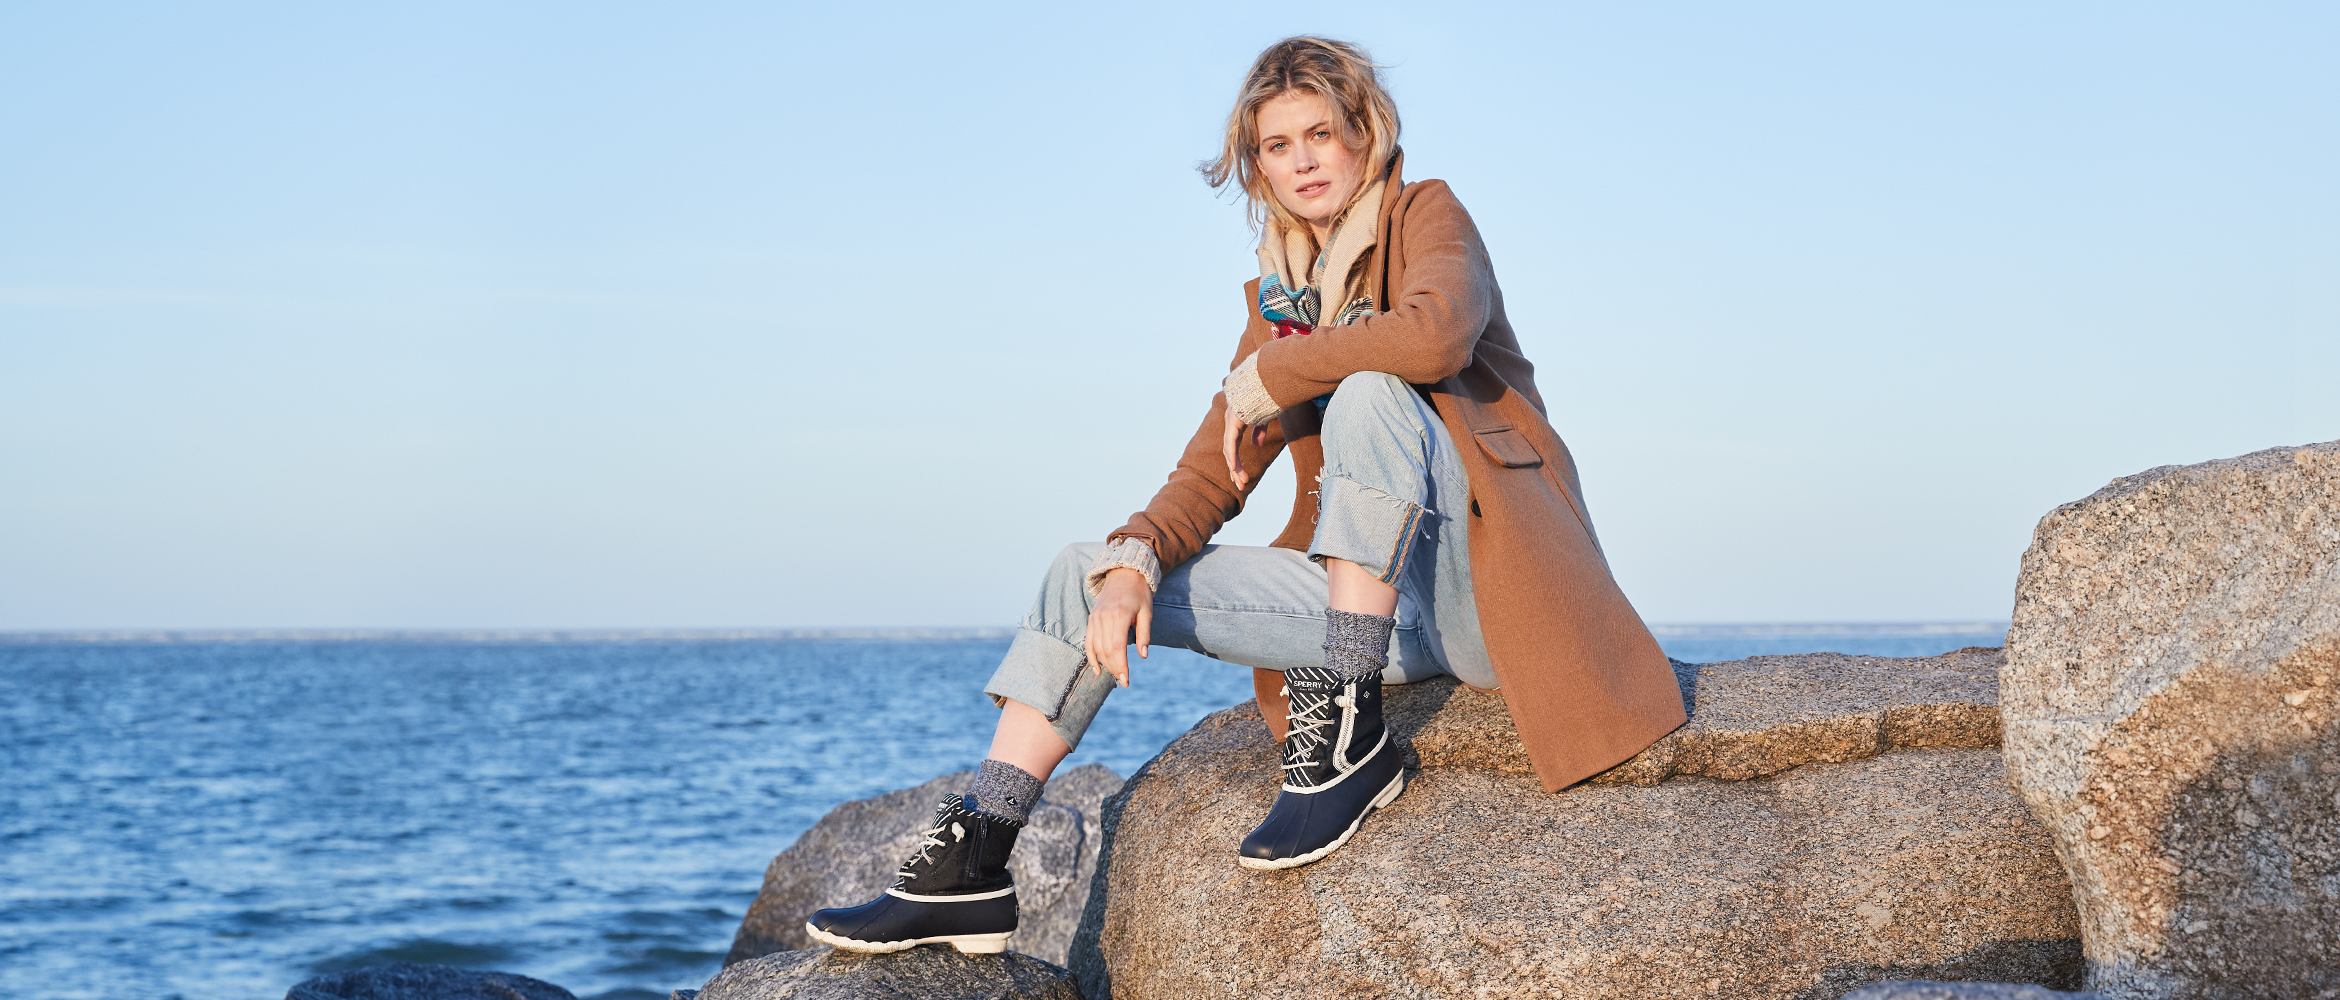 Woman wearing Sperry BIONIC boots while sitting on rocks by the sea.